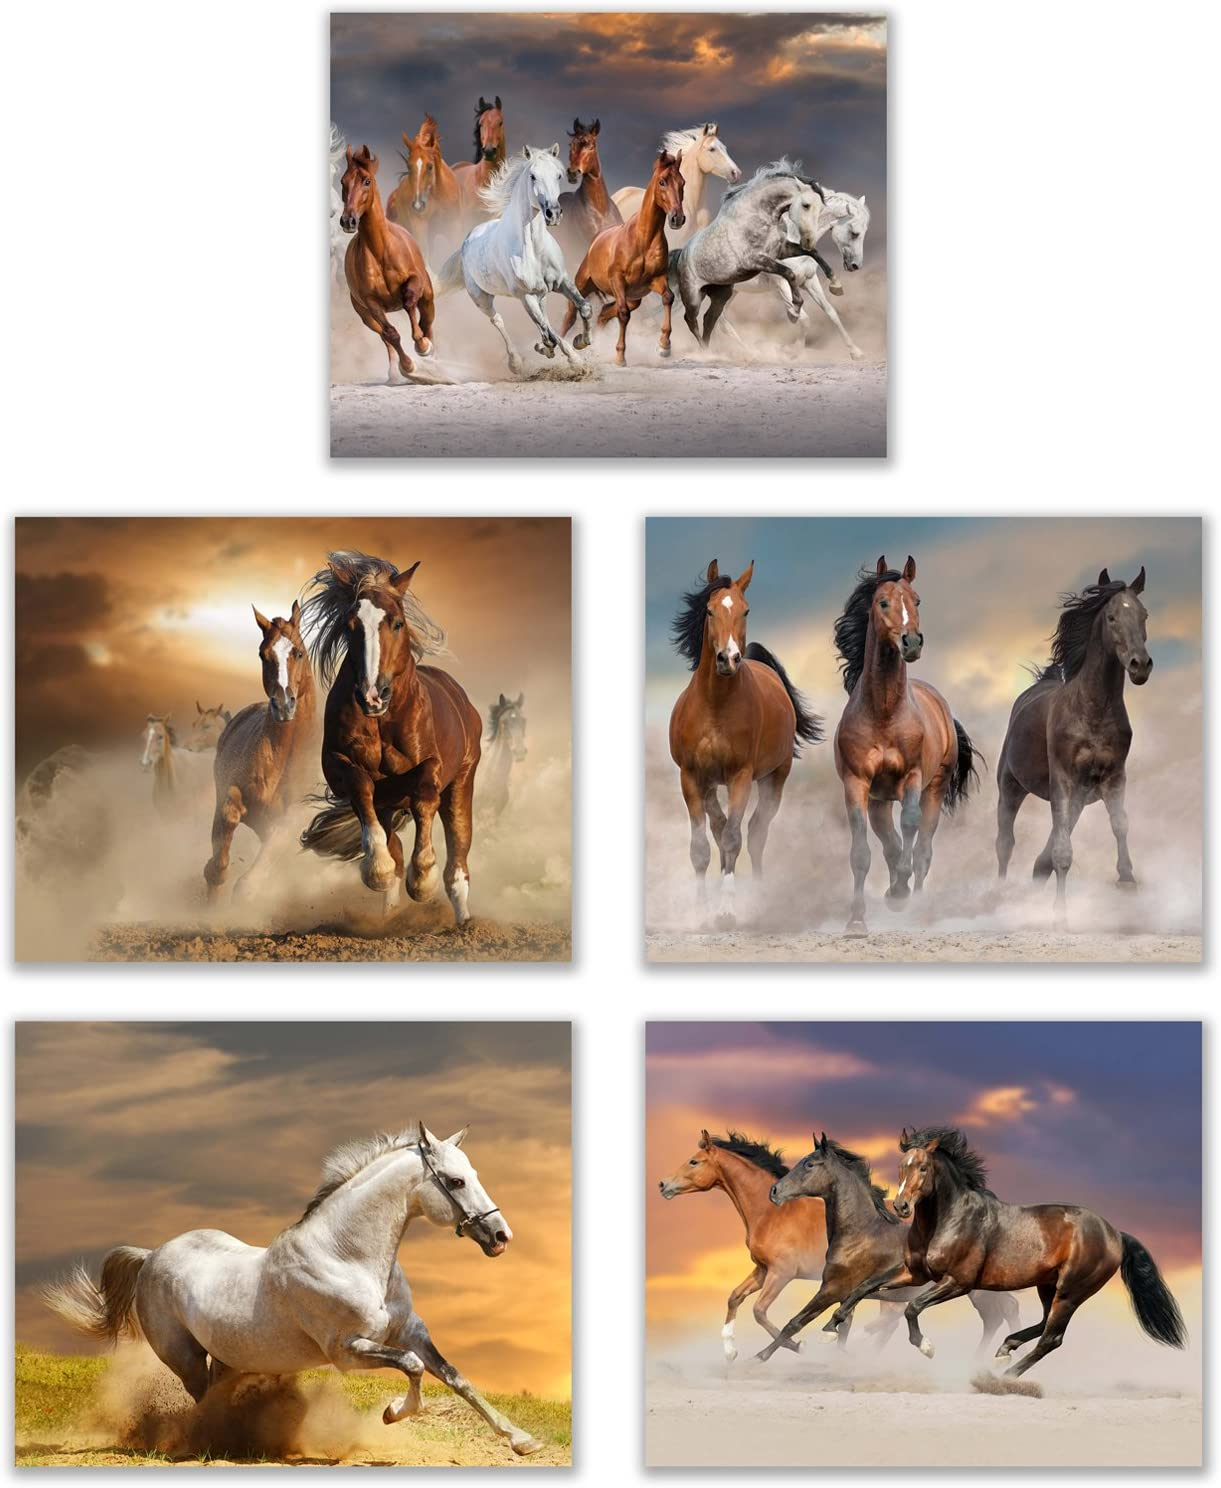 "Horse Inspired Beauty in The Desert (Set of 5): Showcase of Strength and Beauty of a Horse - Wall Art Decor Unframed Poster Prints (8""x10"")"